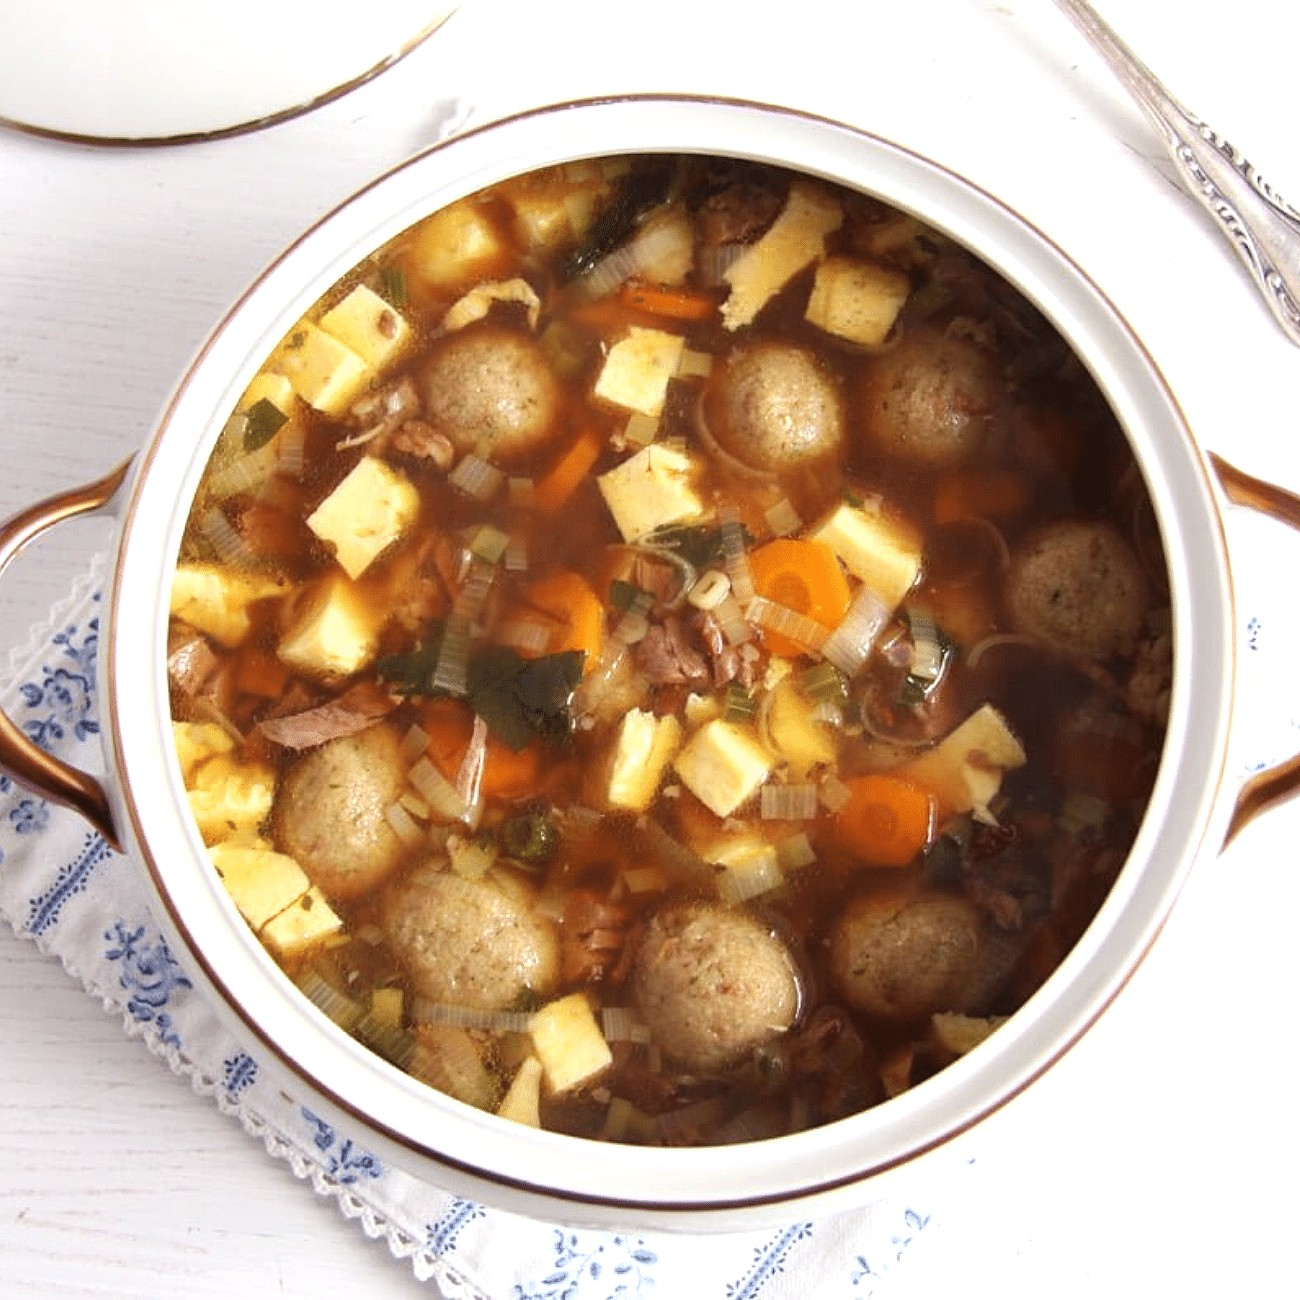 vintage serving bowl with german beef soup with dumplings